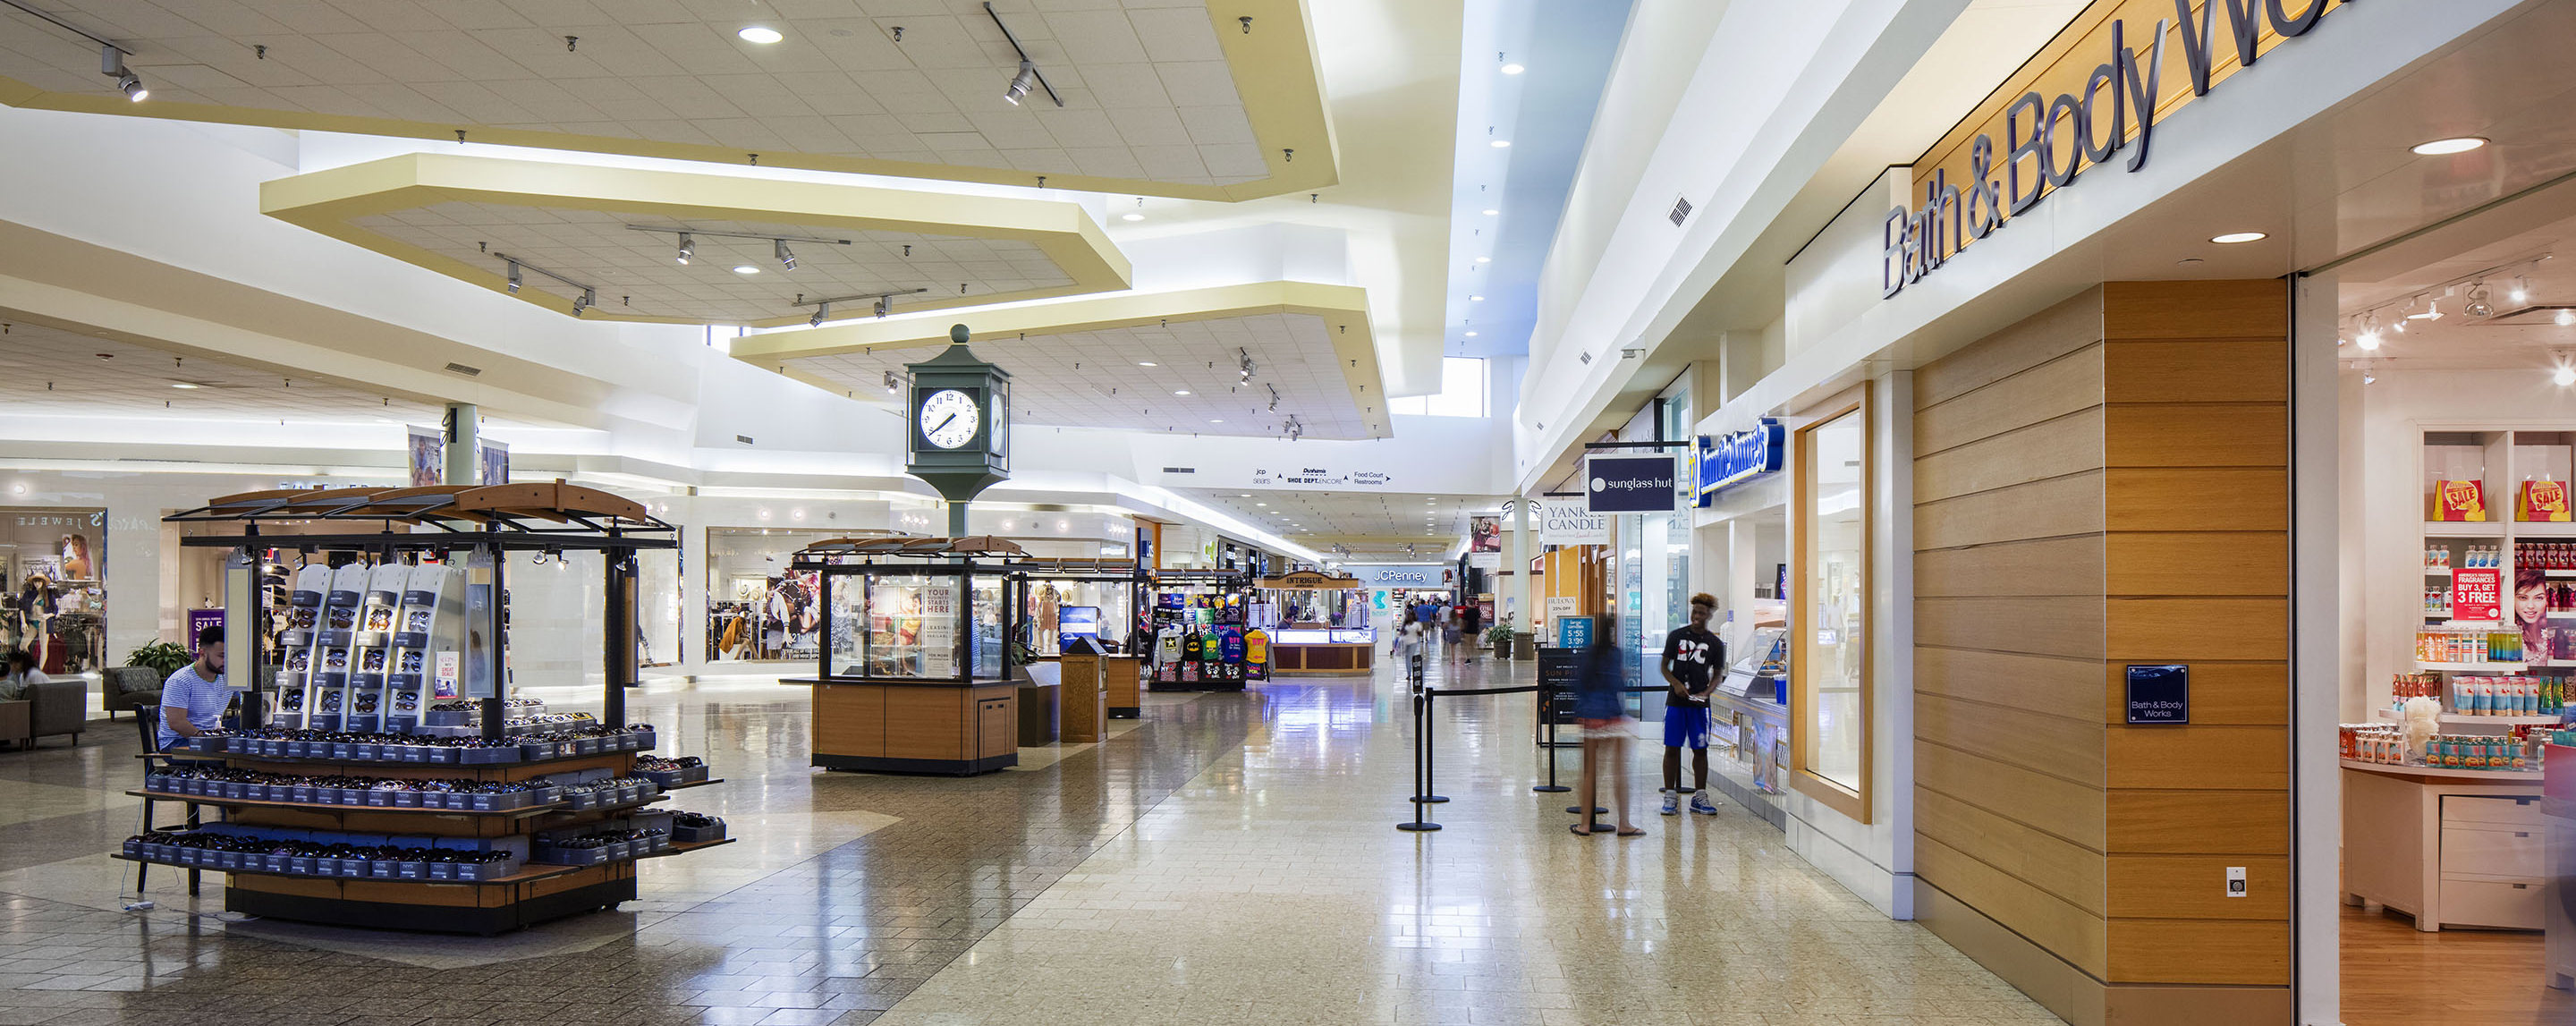 The interior of the Greenwood Mall has shoppers going in and out of store fronts and is also lined with a variety of kiosks in the common area.